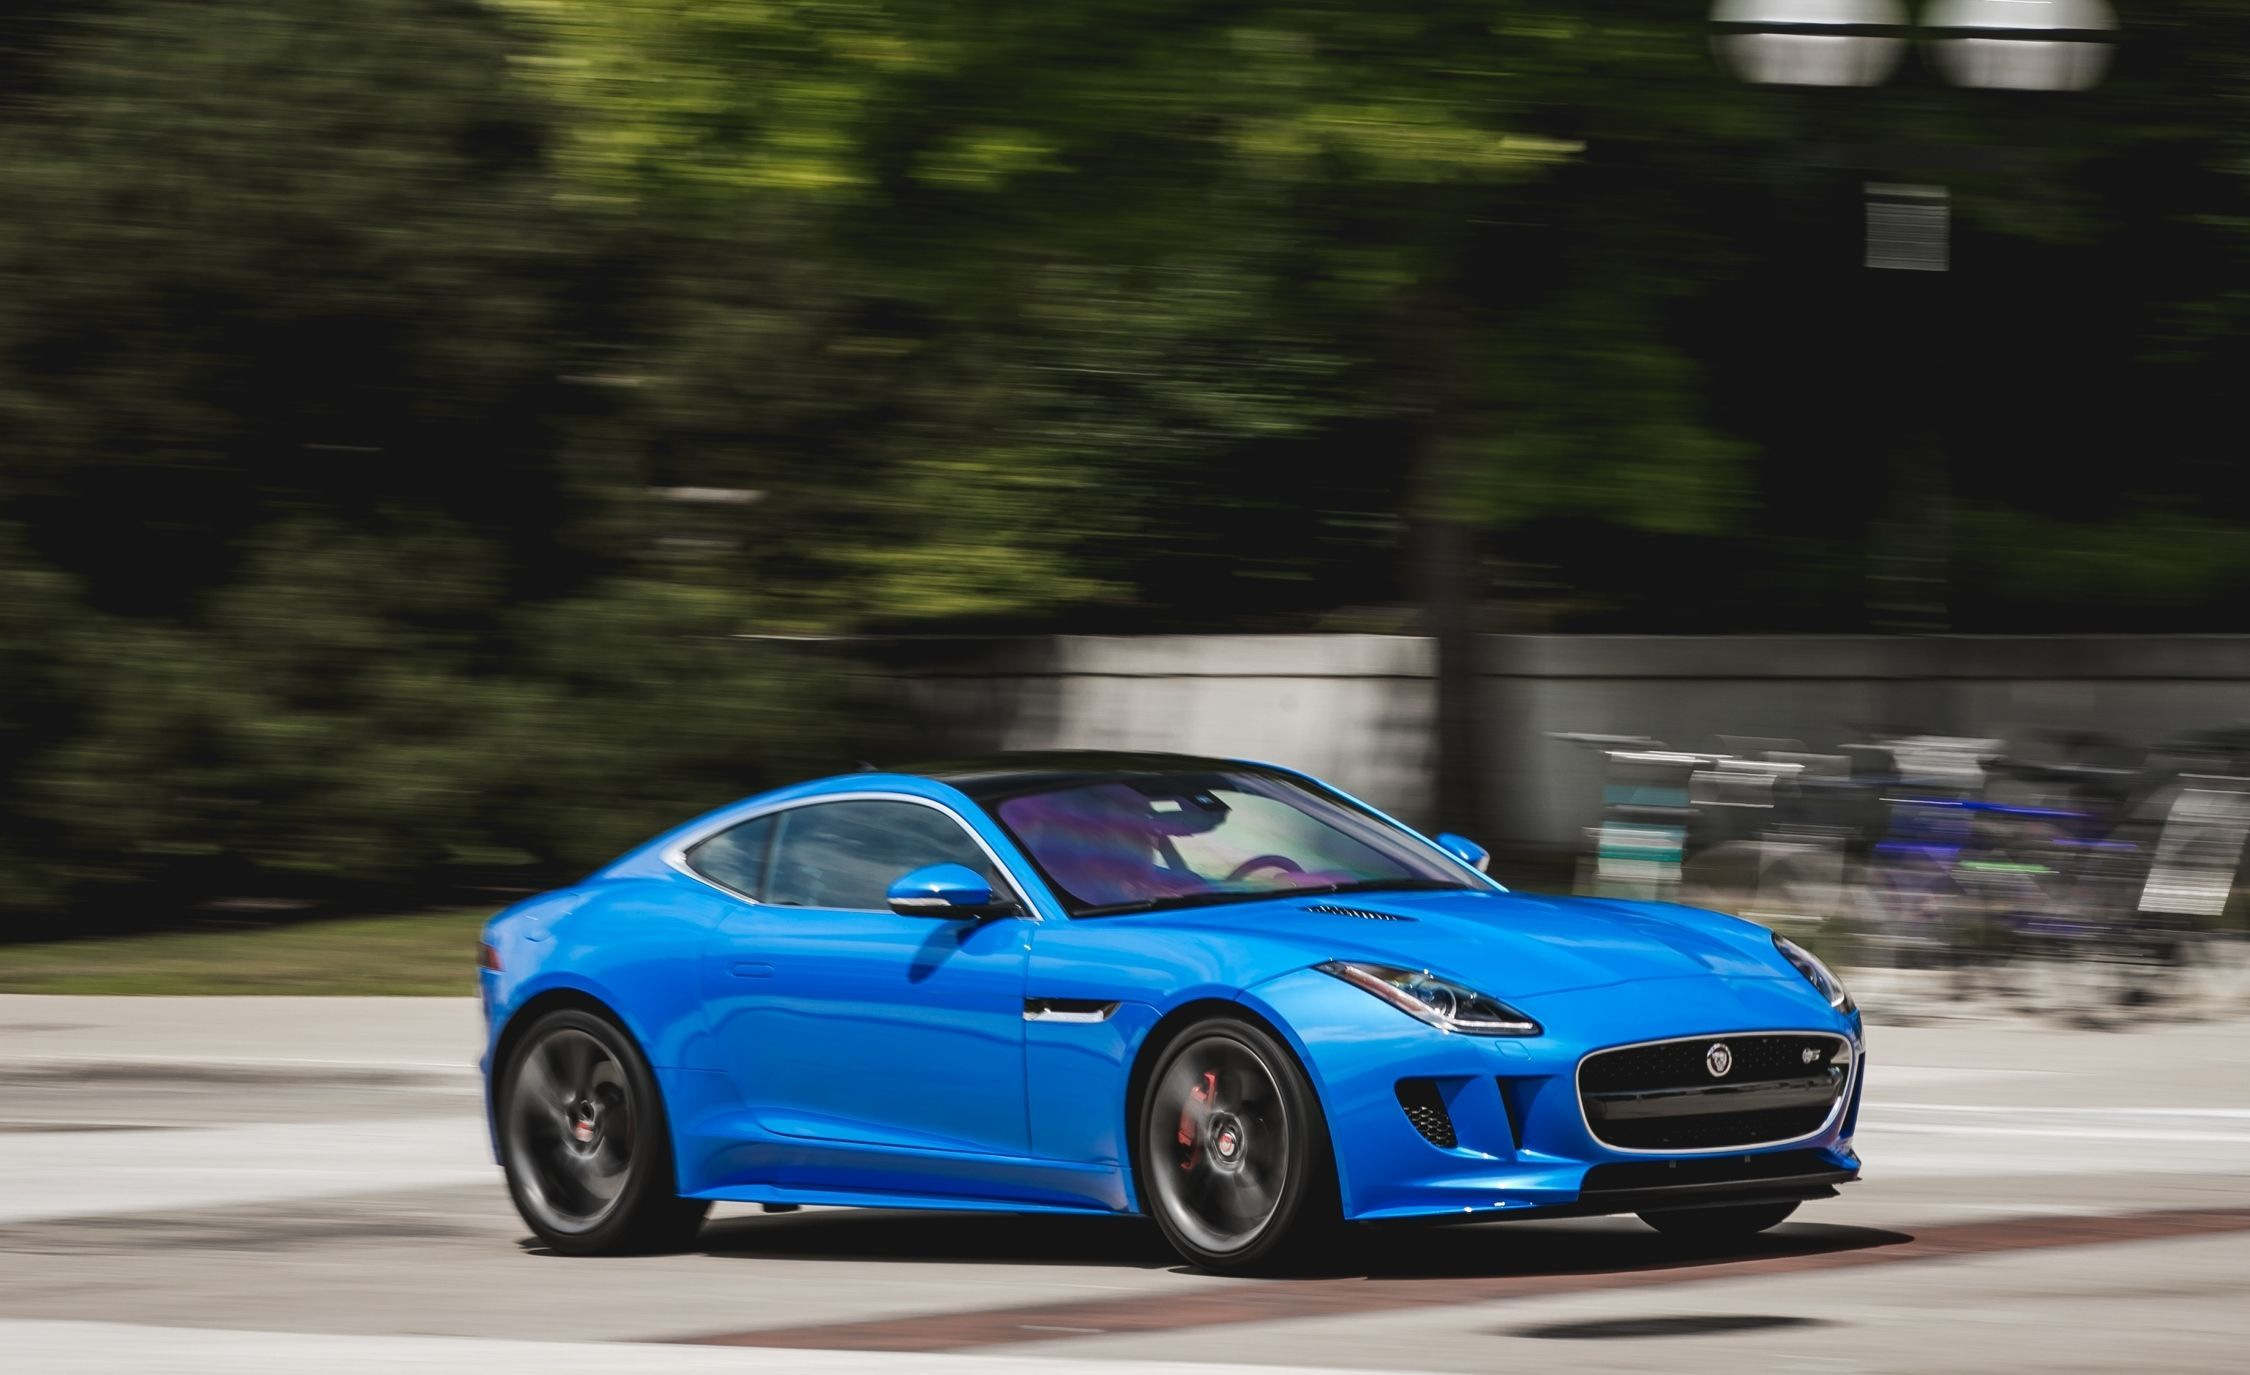 12 New-Car Lease Deals to Make Your Memorial Day Weekend - Slide 13